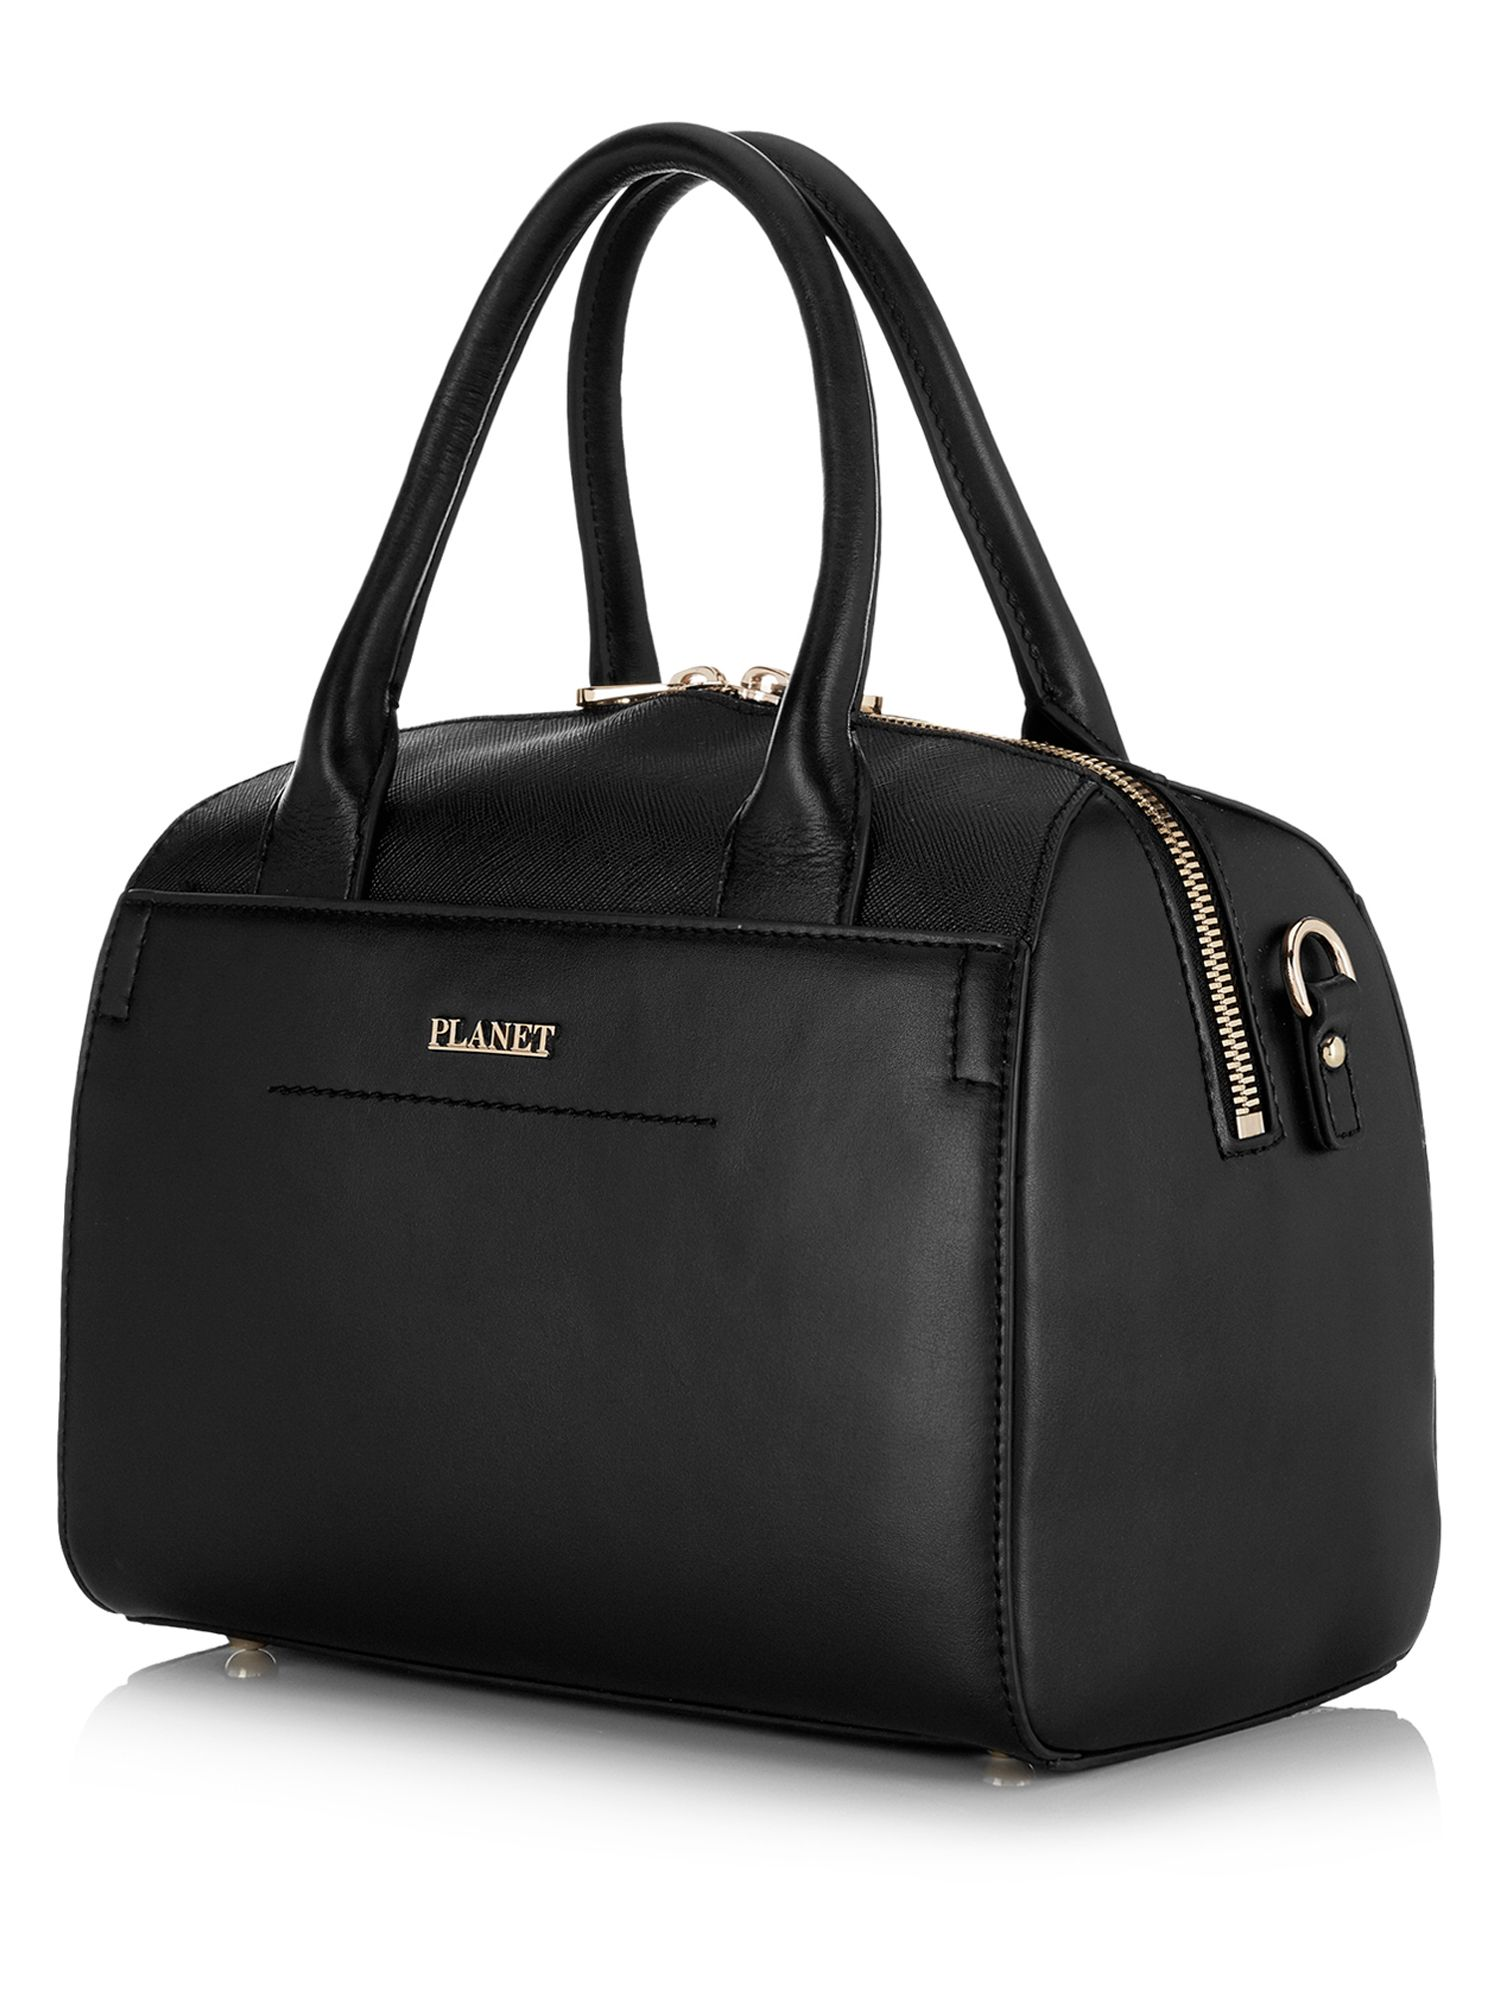 The Hemingford Bag - Black